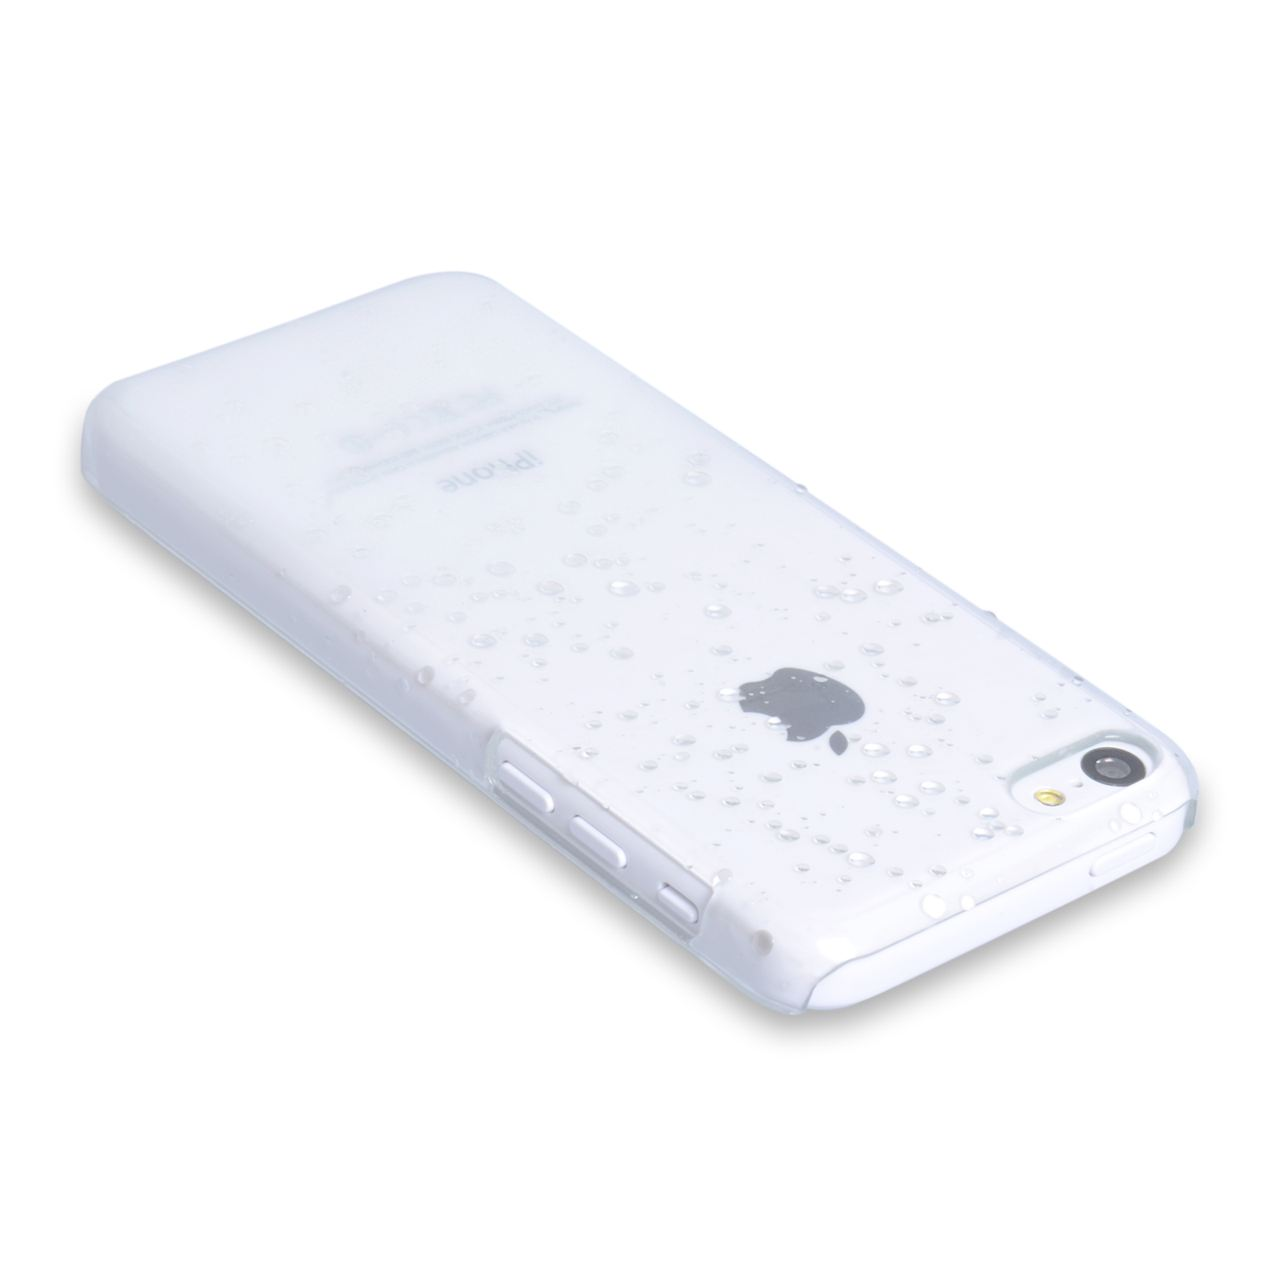 YouSave Accessories iPhone 5C Raindrop Hard Case - White